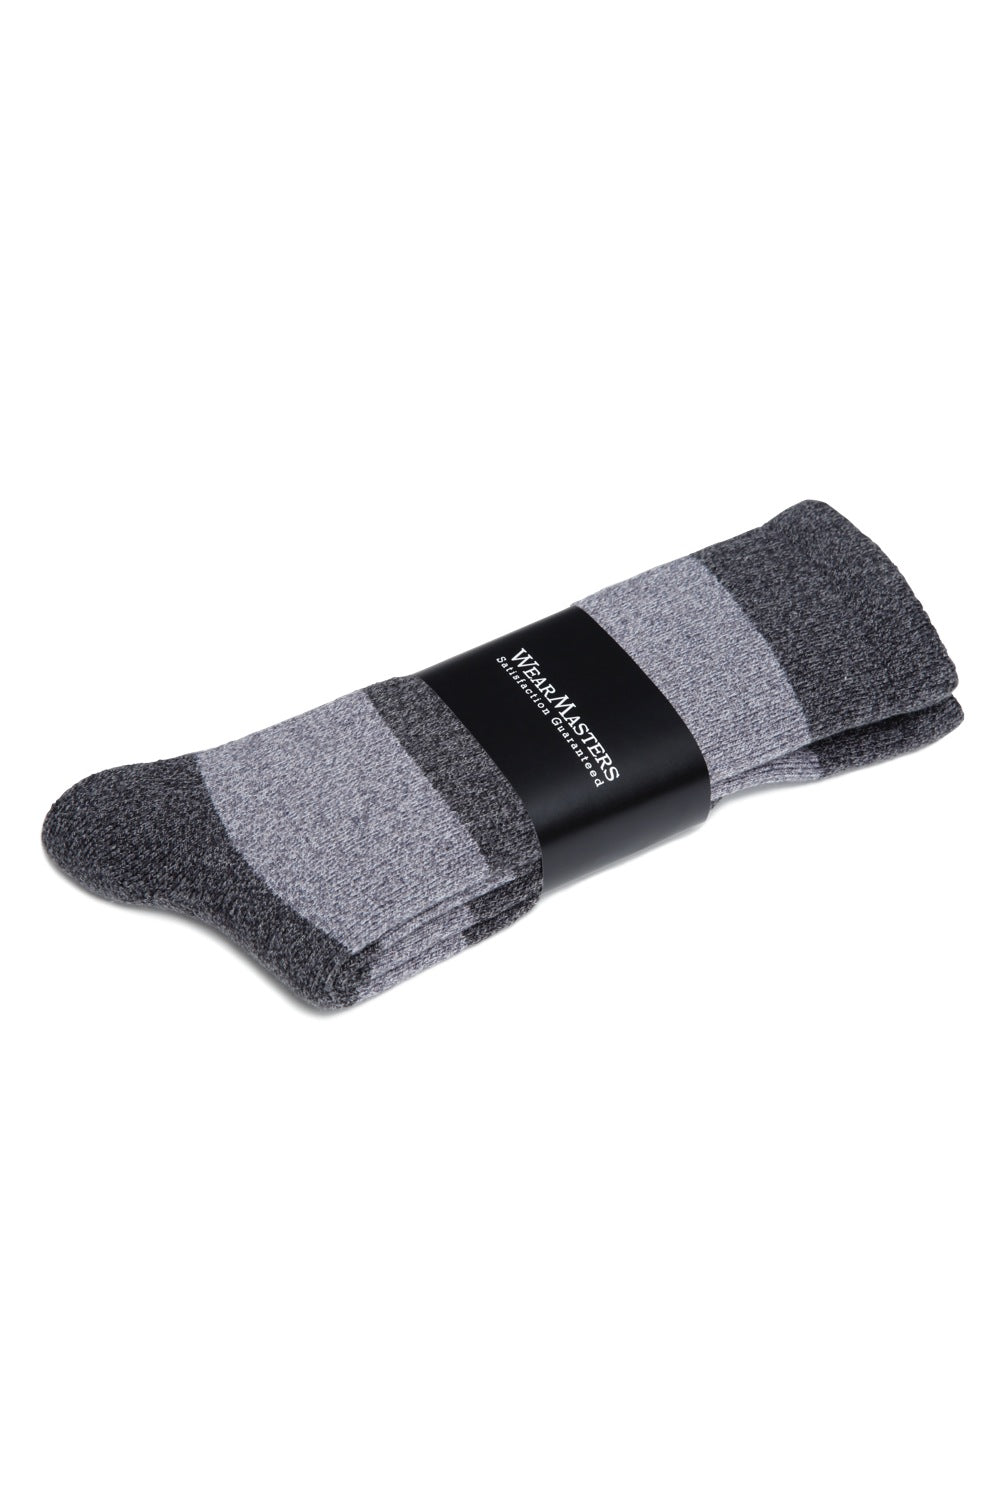 Lot.600 Boots Sox -Covert Gray Border-